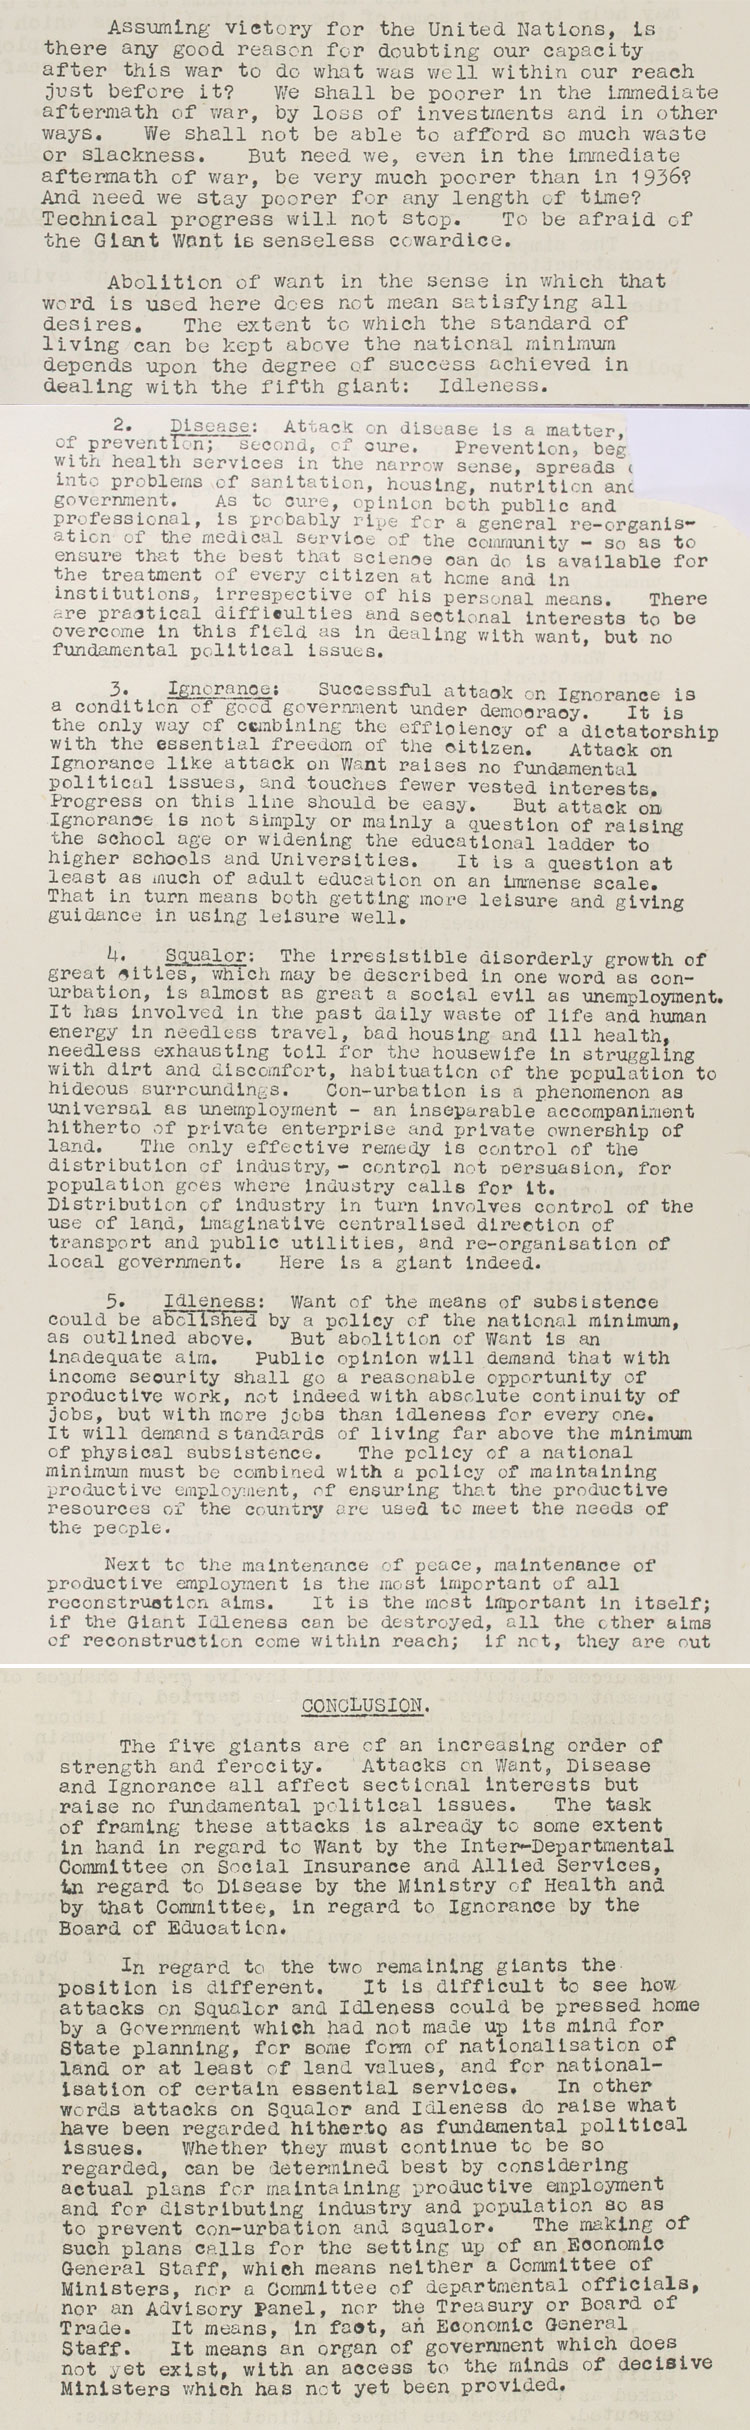 Extract from notes from the advisory panel on Home Affairs on Reconstruction Problems: the Five Giants on the Road, 25th June, 1942 (T 161/1165)